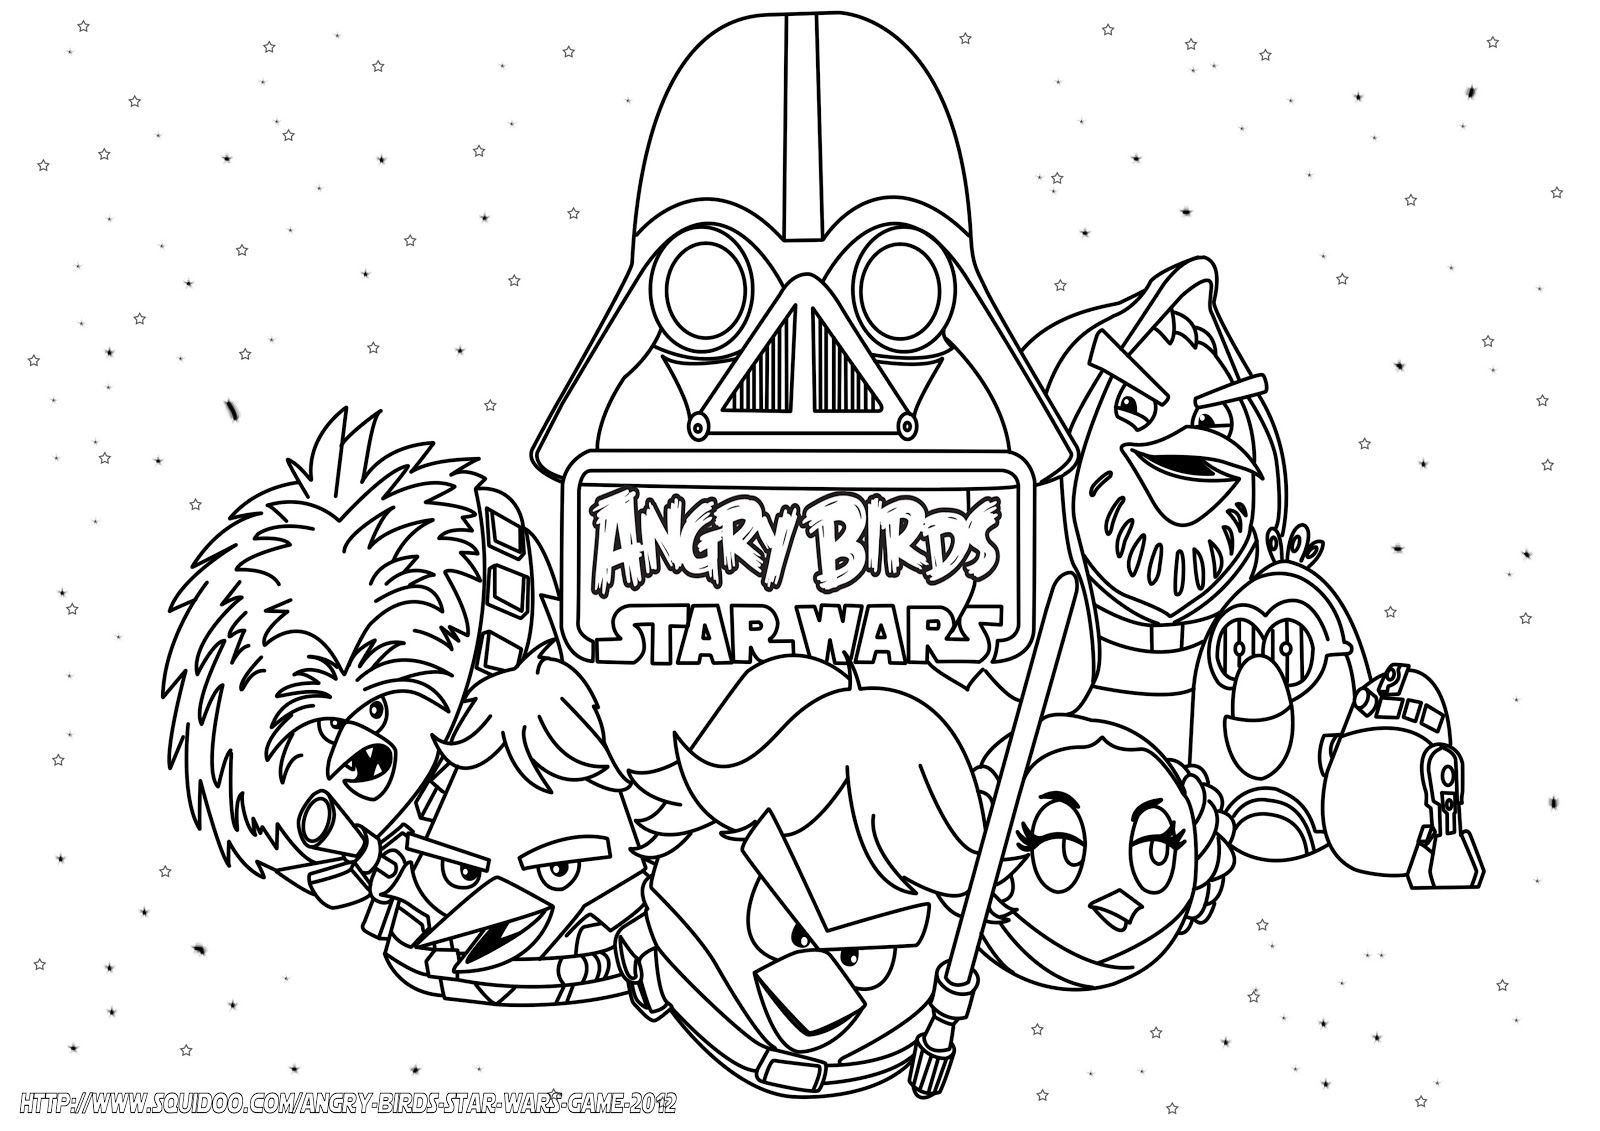 Angry Birds Star Wars Coloring Pages Hd Wallpapers Detskie